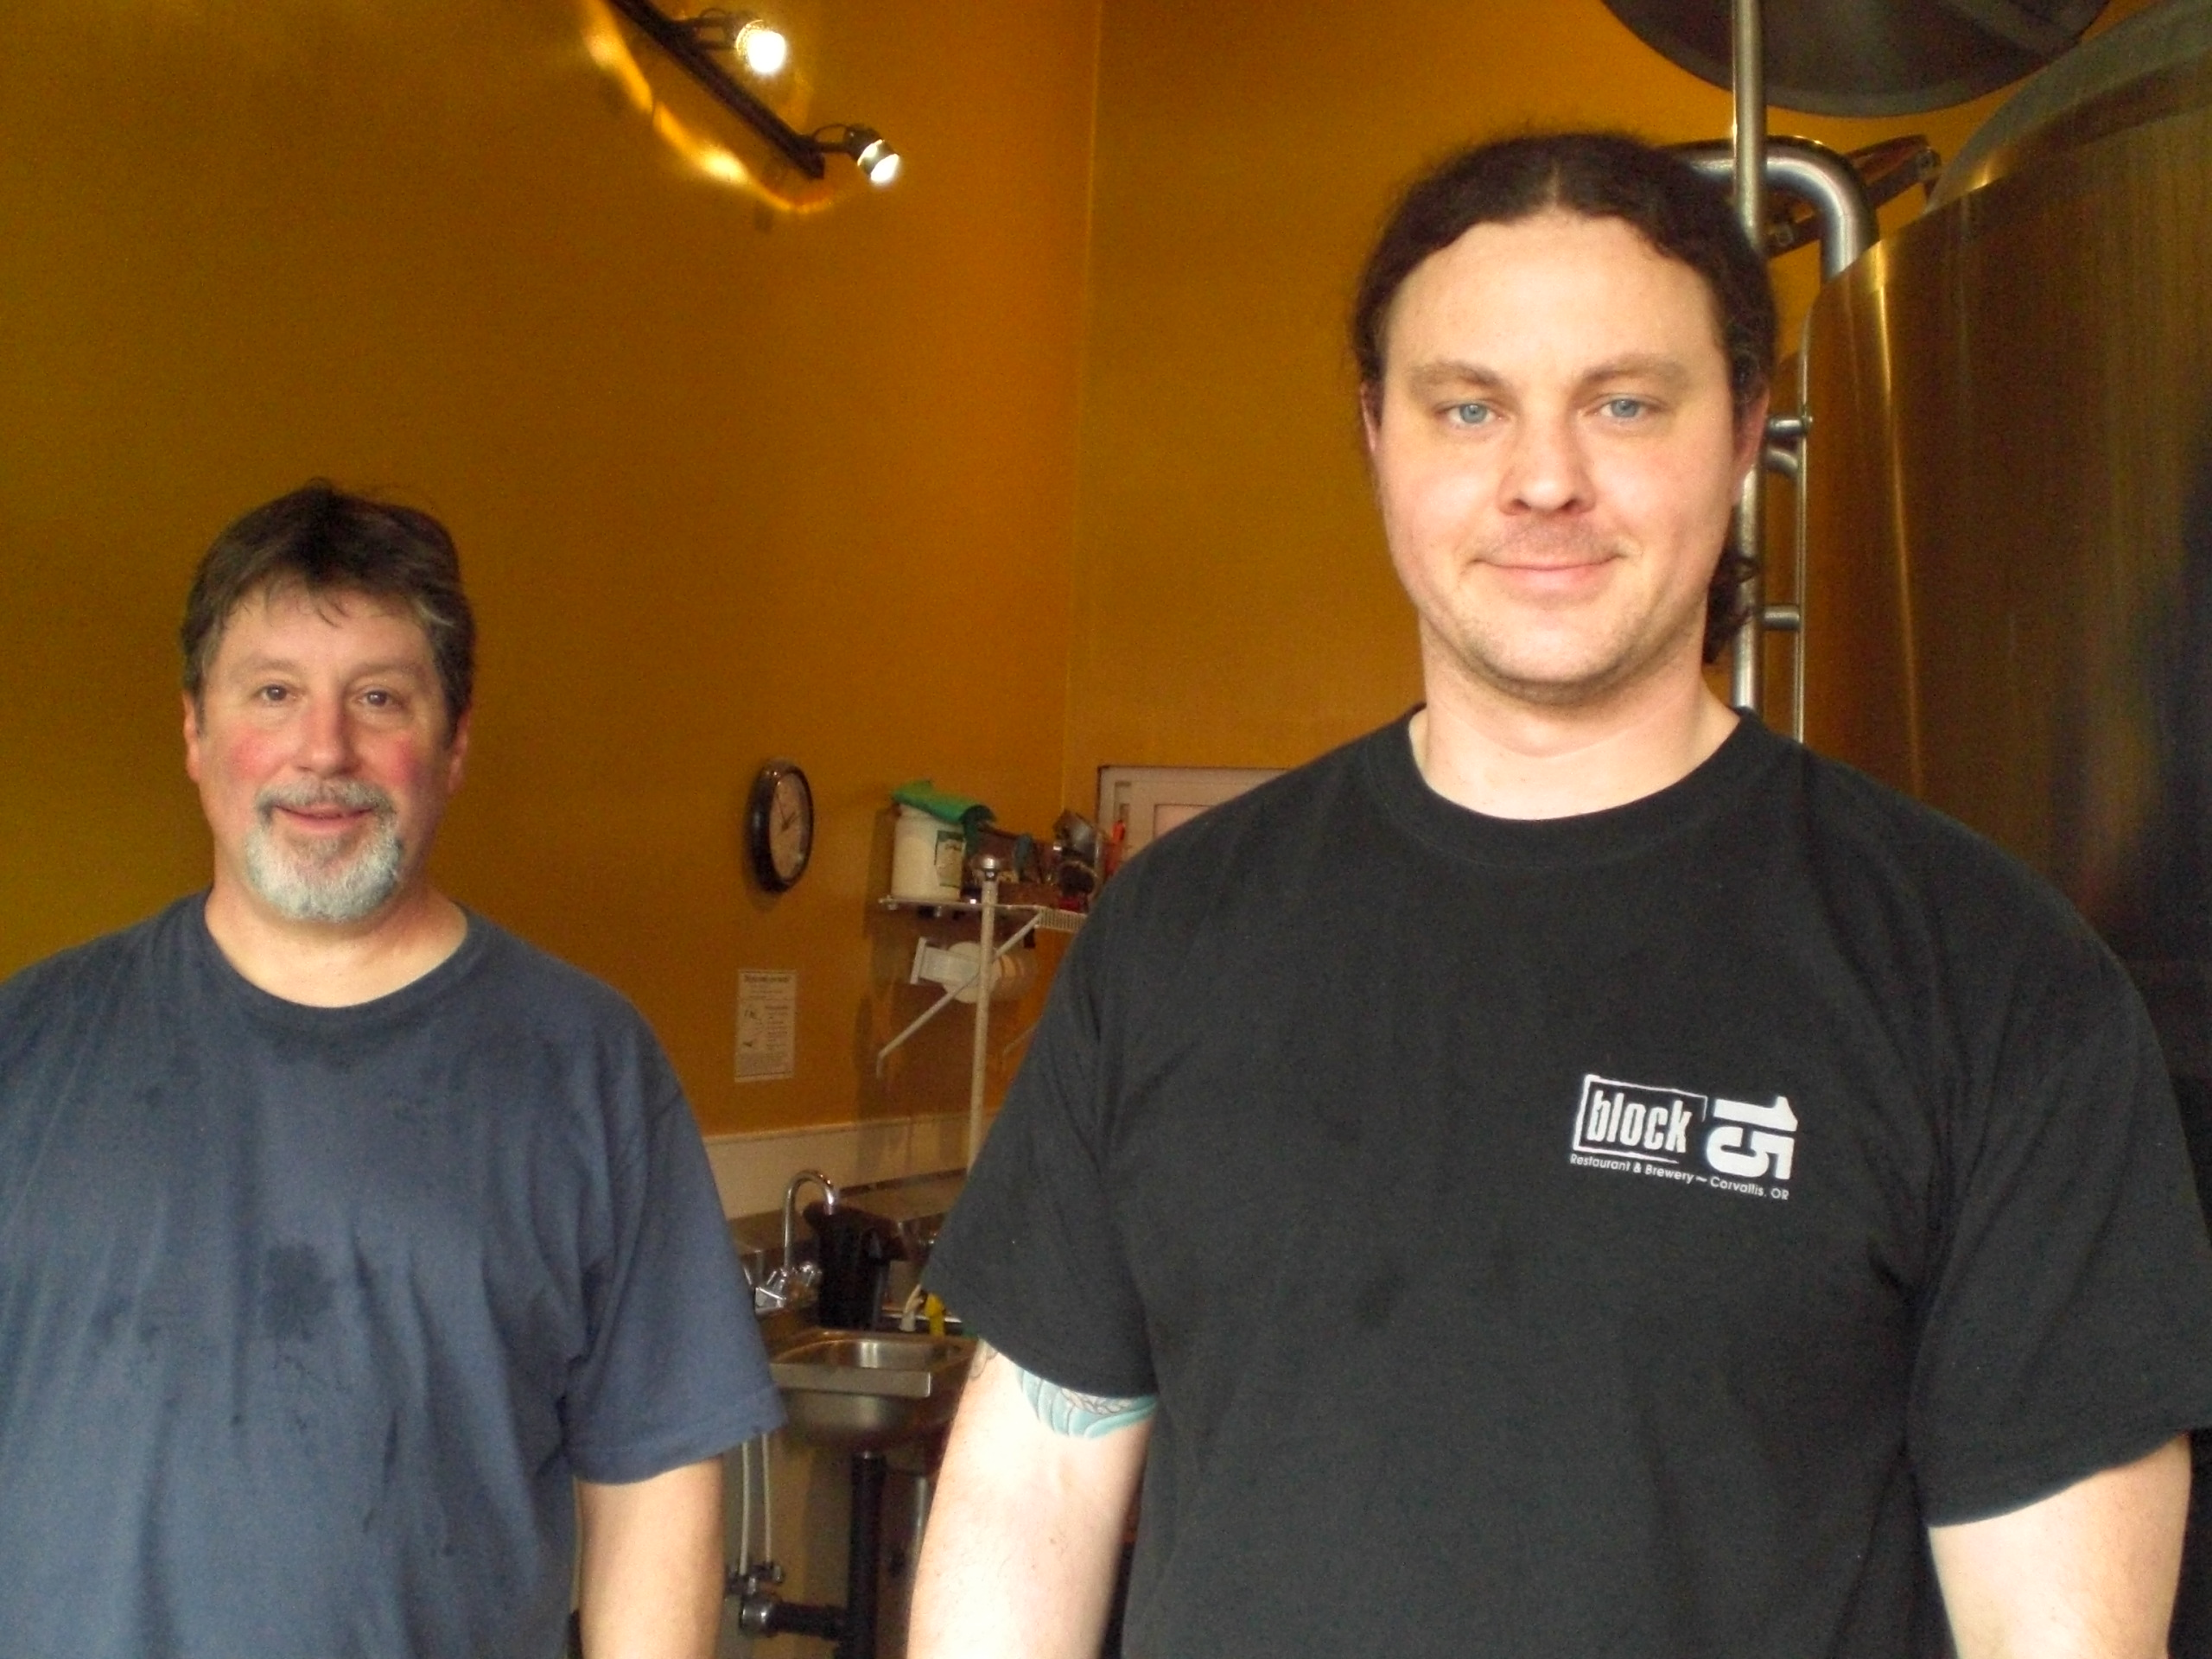 Brewmaster Steve Van Rossem (right) and Nick Arzner of Block 15